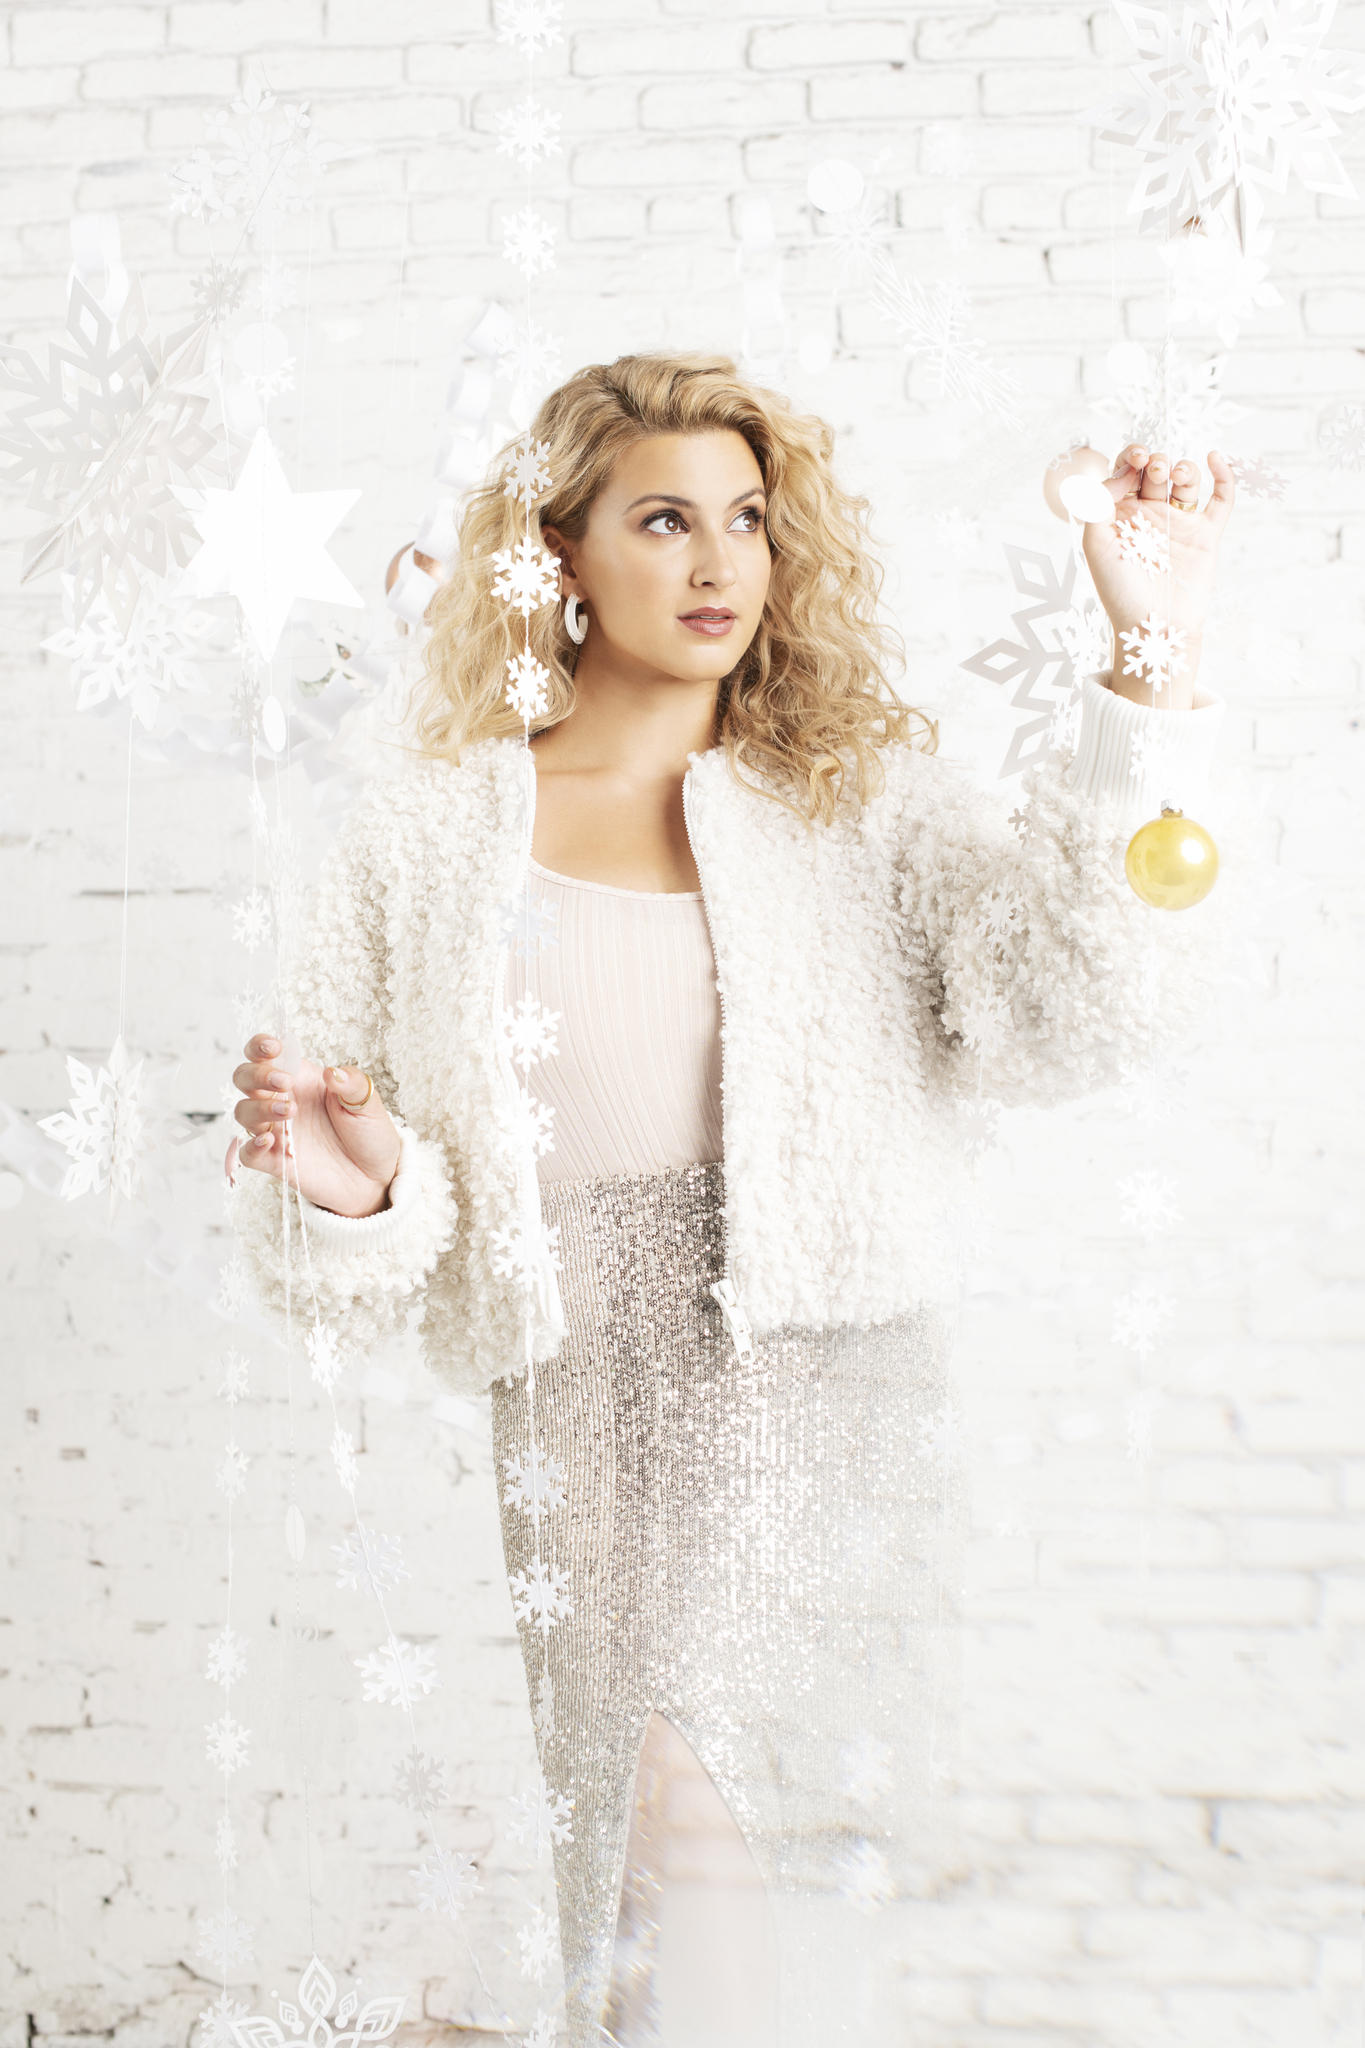 Tori Kelly Announces 'A Tori Kelly Christmas' for October 30